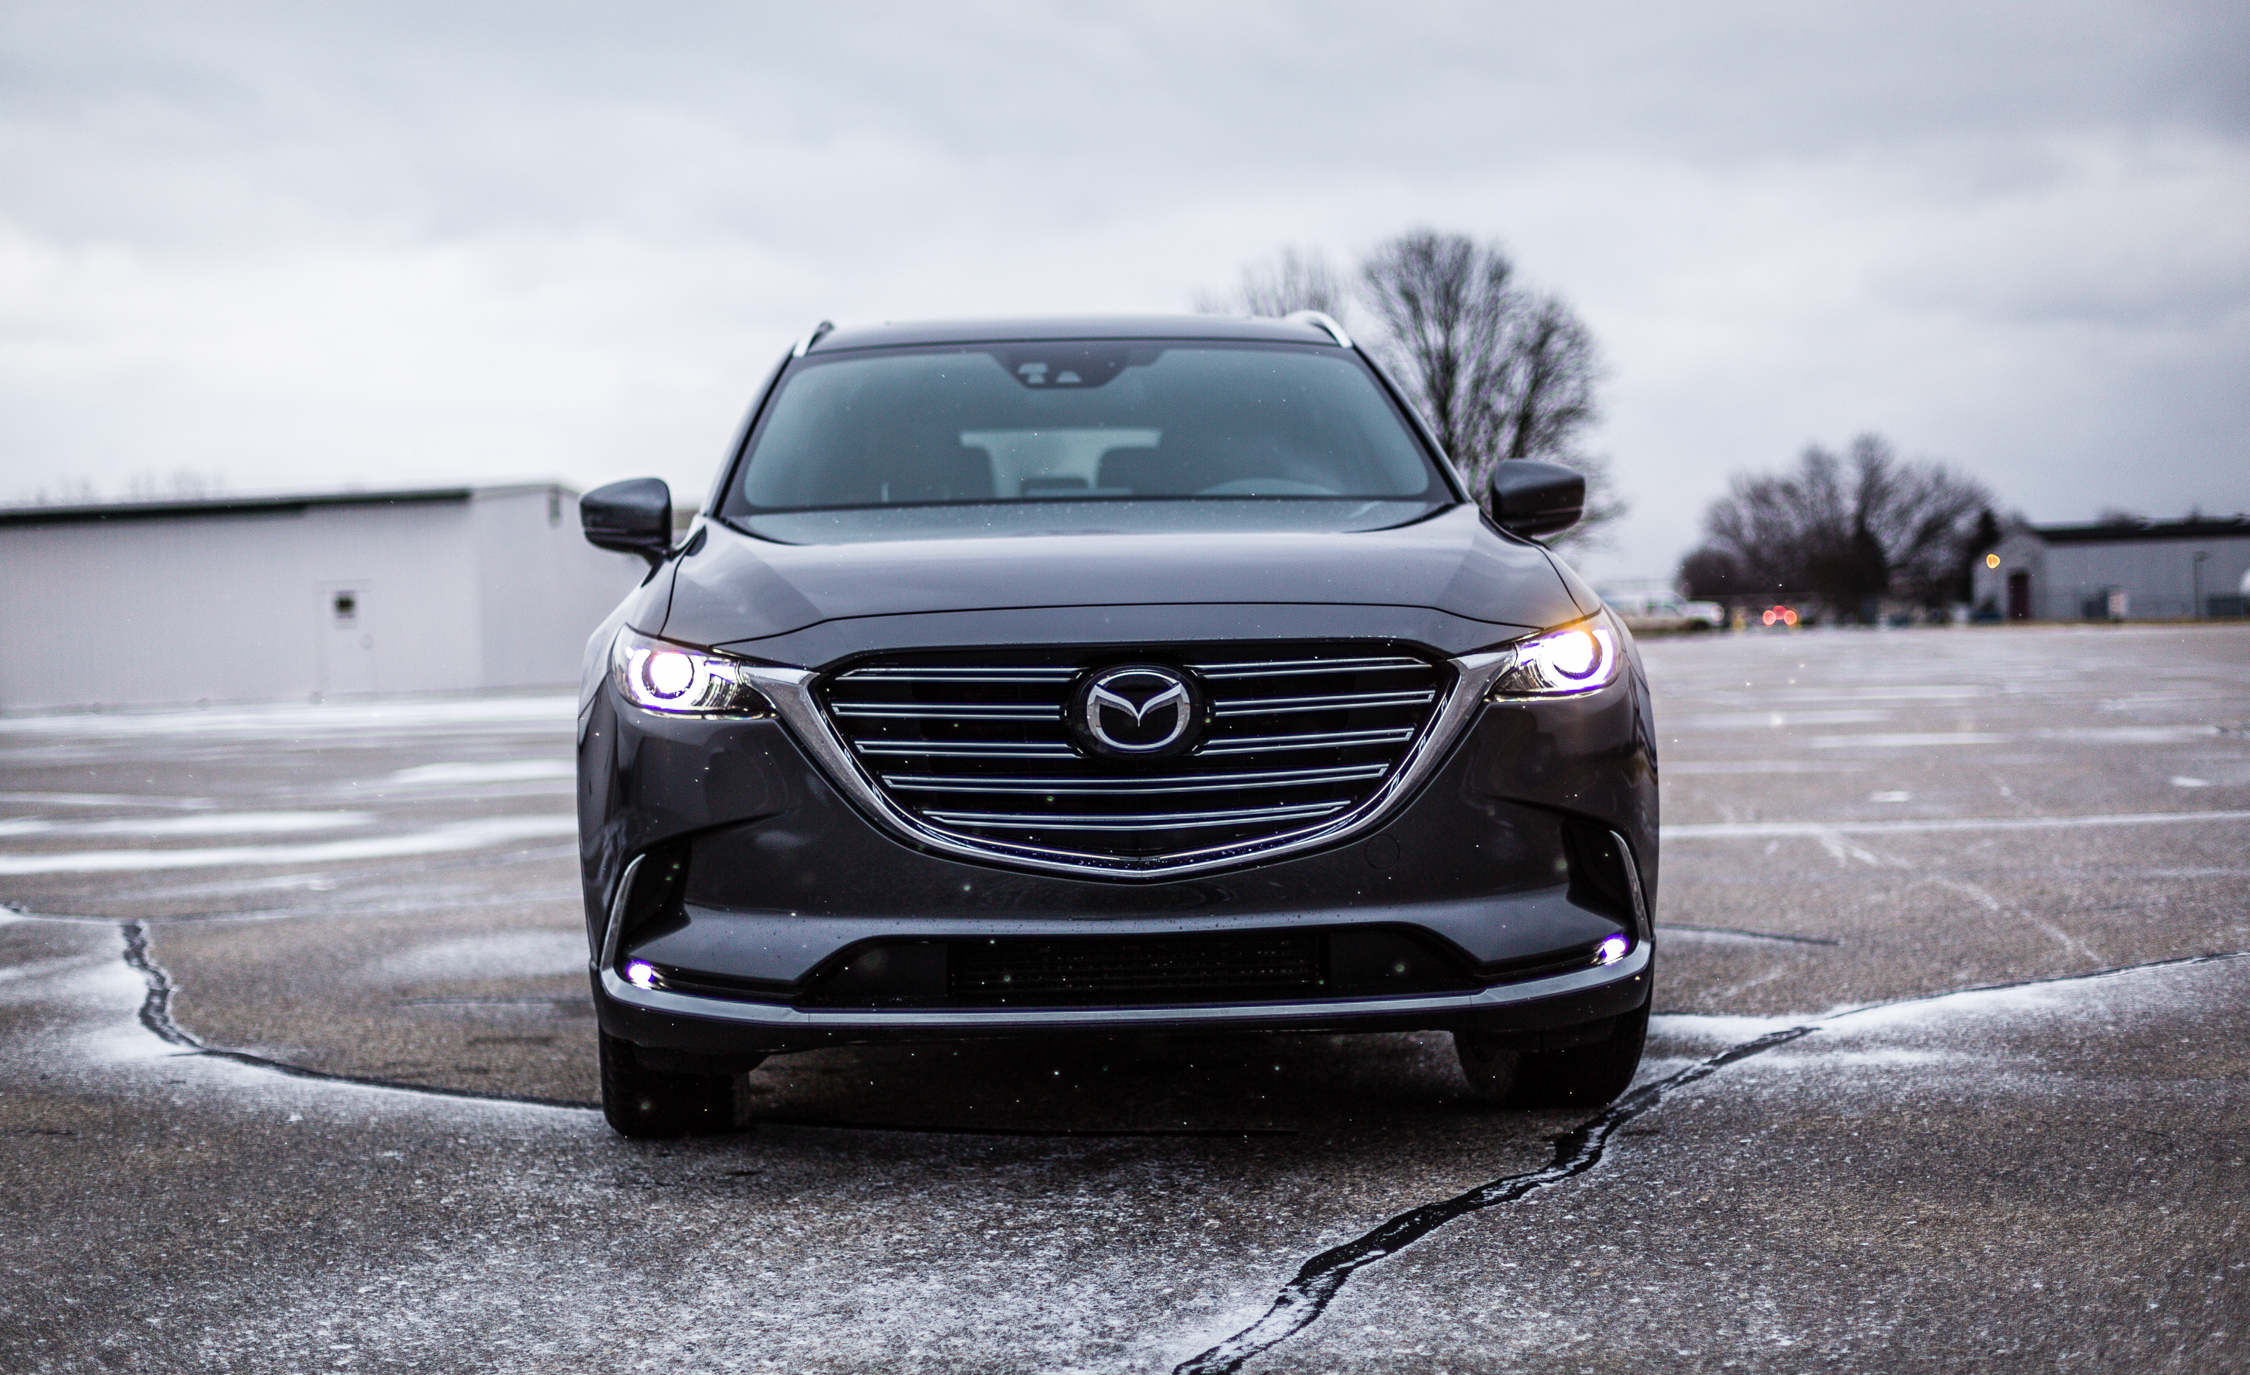 2017 Mazda CX 9 Grey Exterior Front End (Photo 8 of 28)